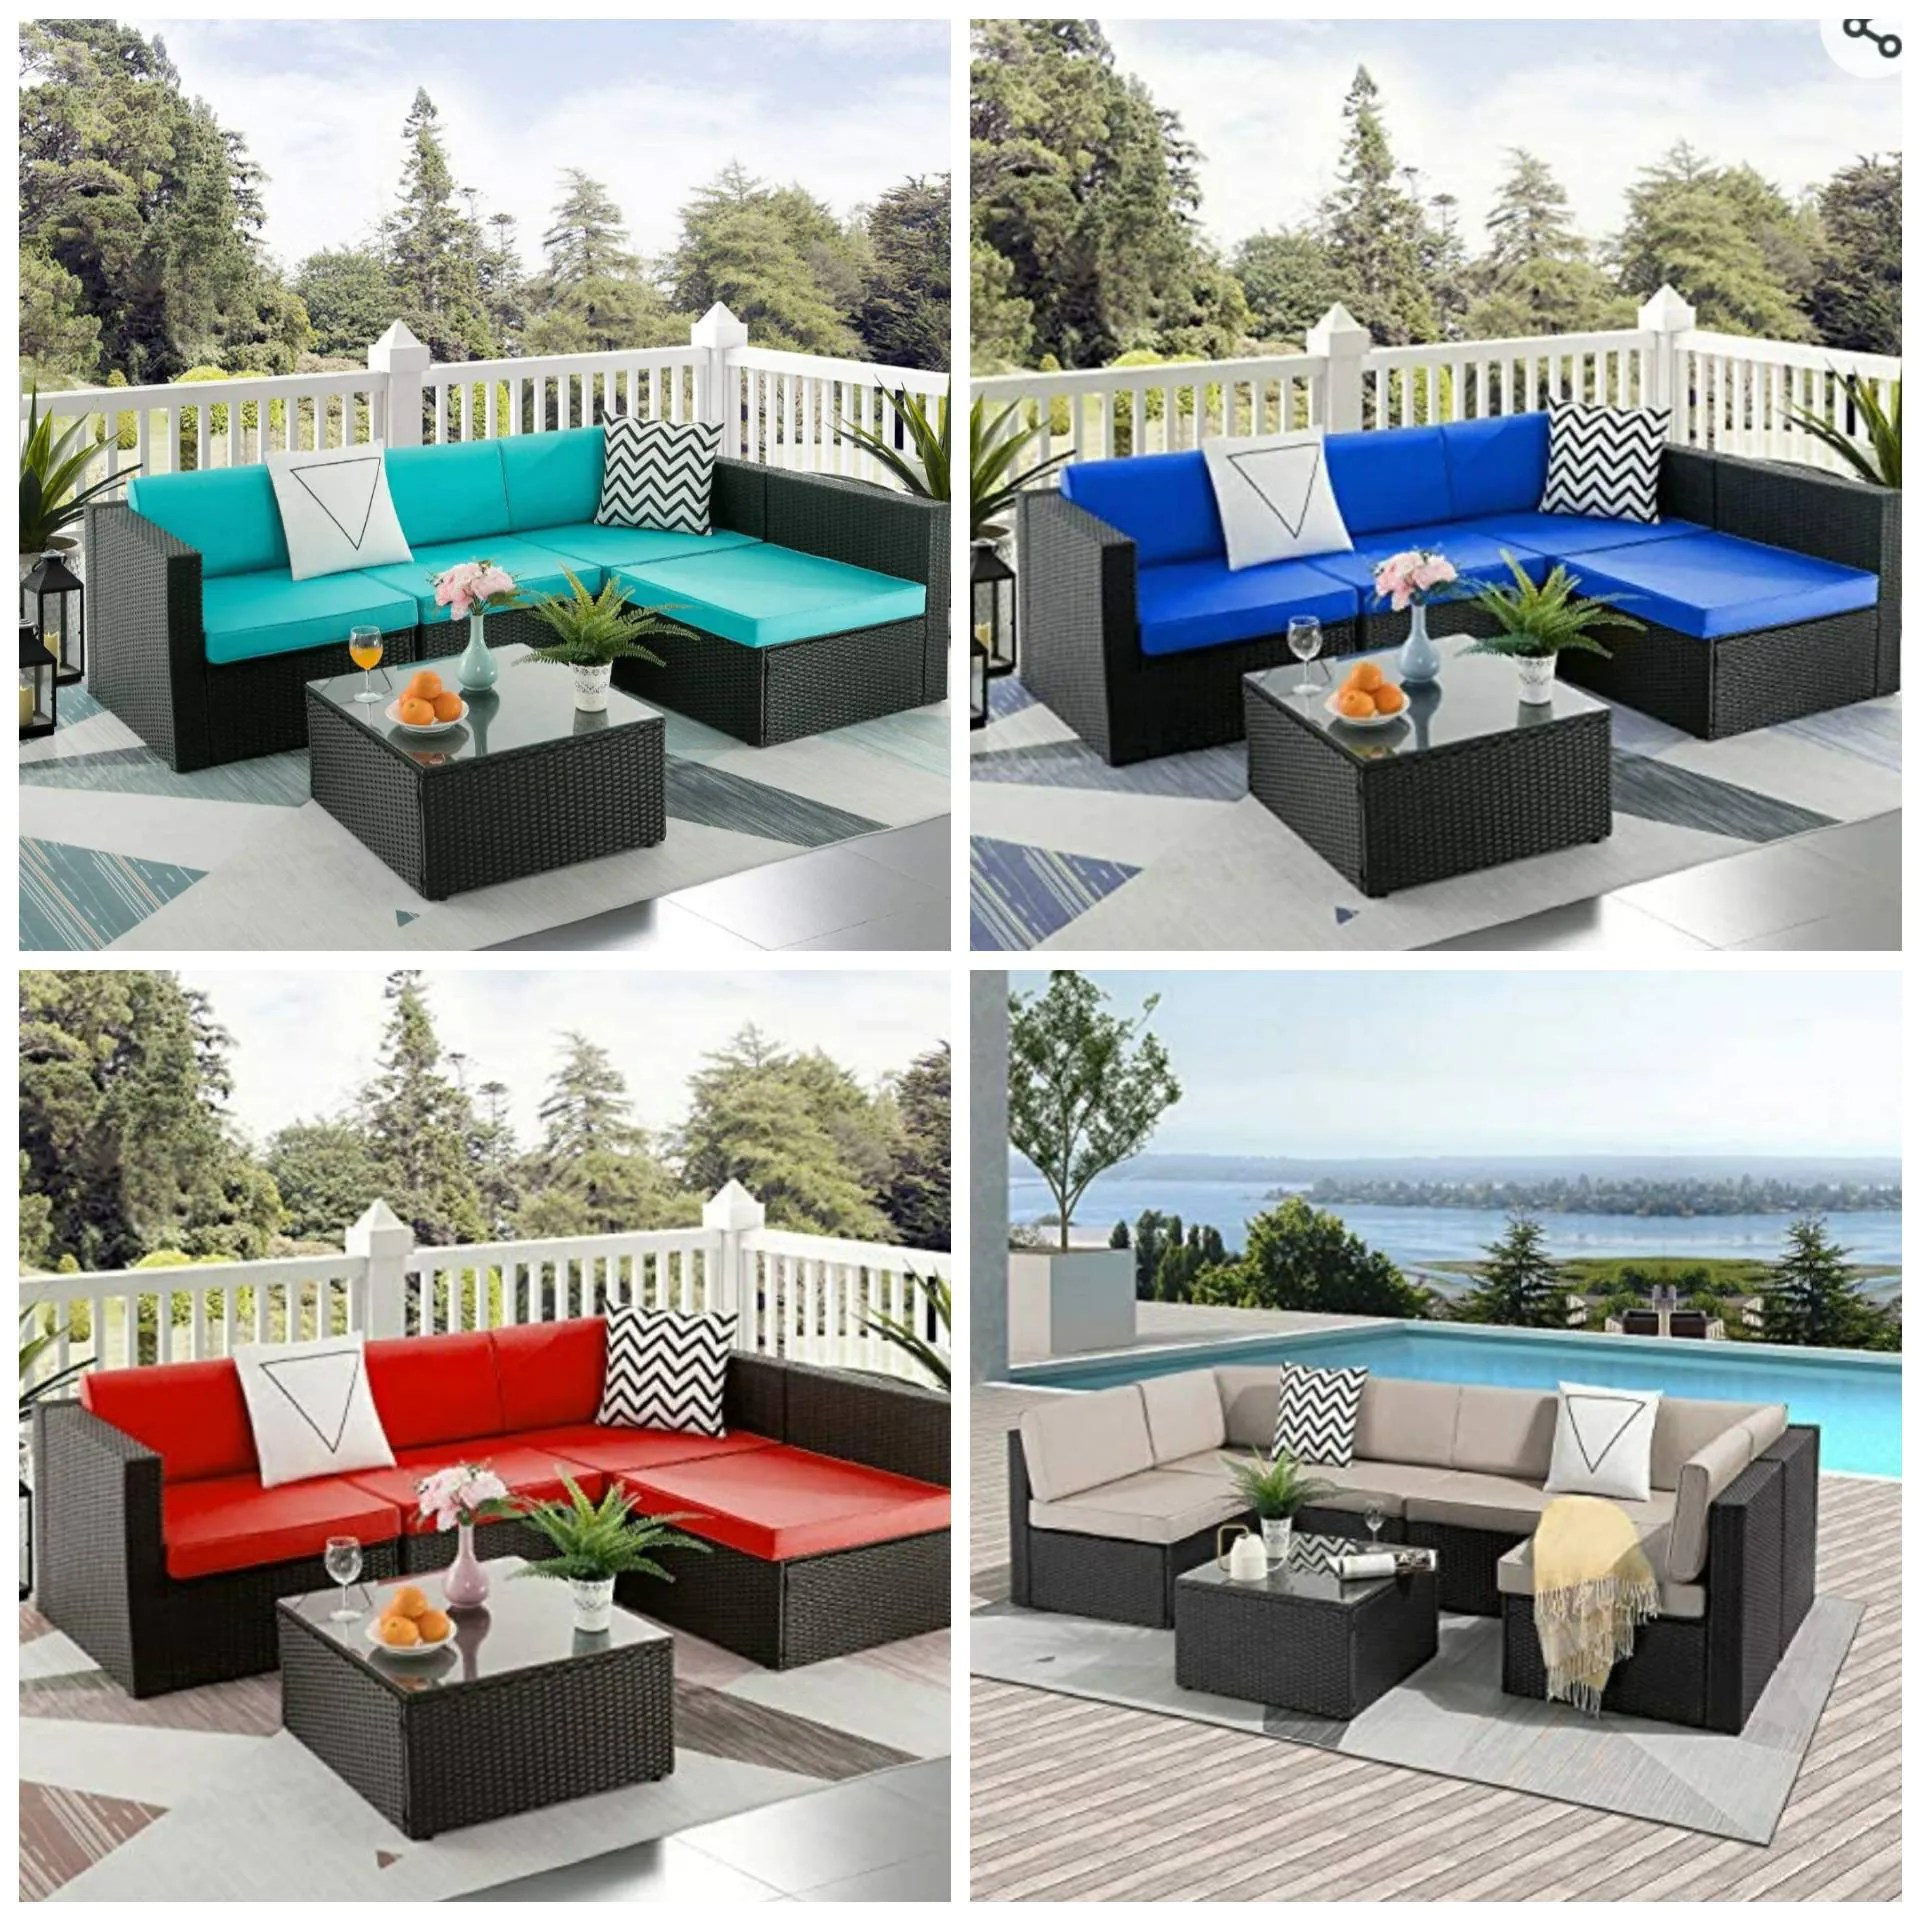 https price com v3 pdp amolife 7 pieces patio pe rattan sofa chair set outdoor sectional furniture black wicker conversation set with cushions and tea table 5ebbdc83a17b1d80f60a85ce